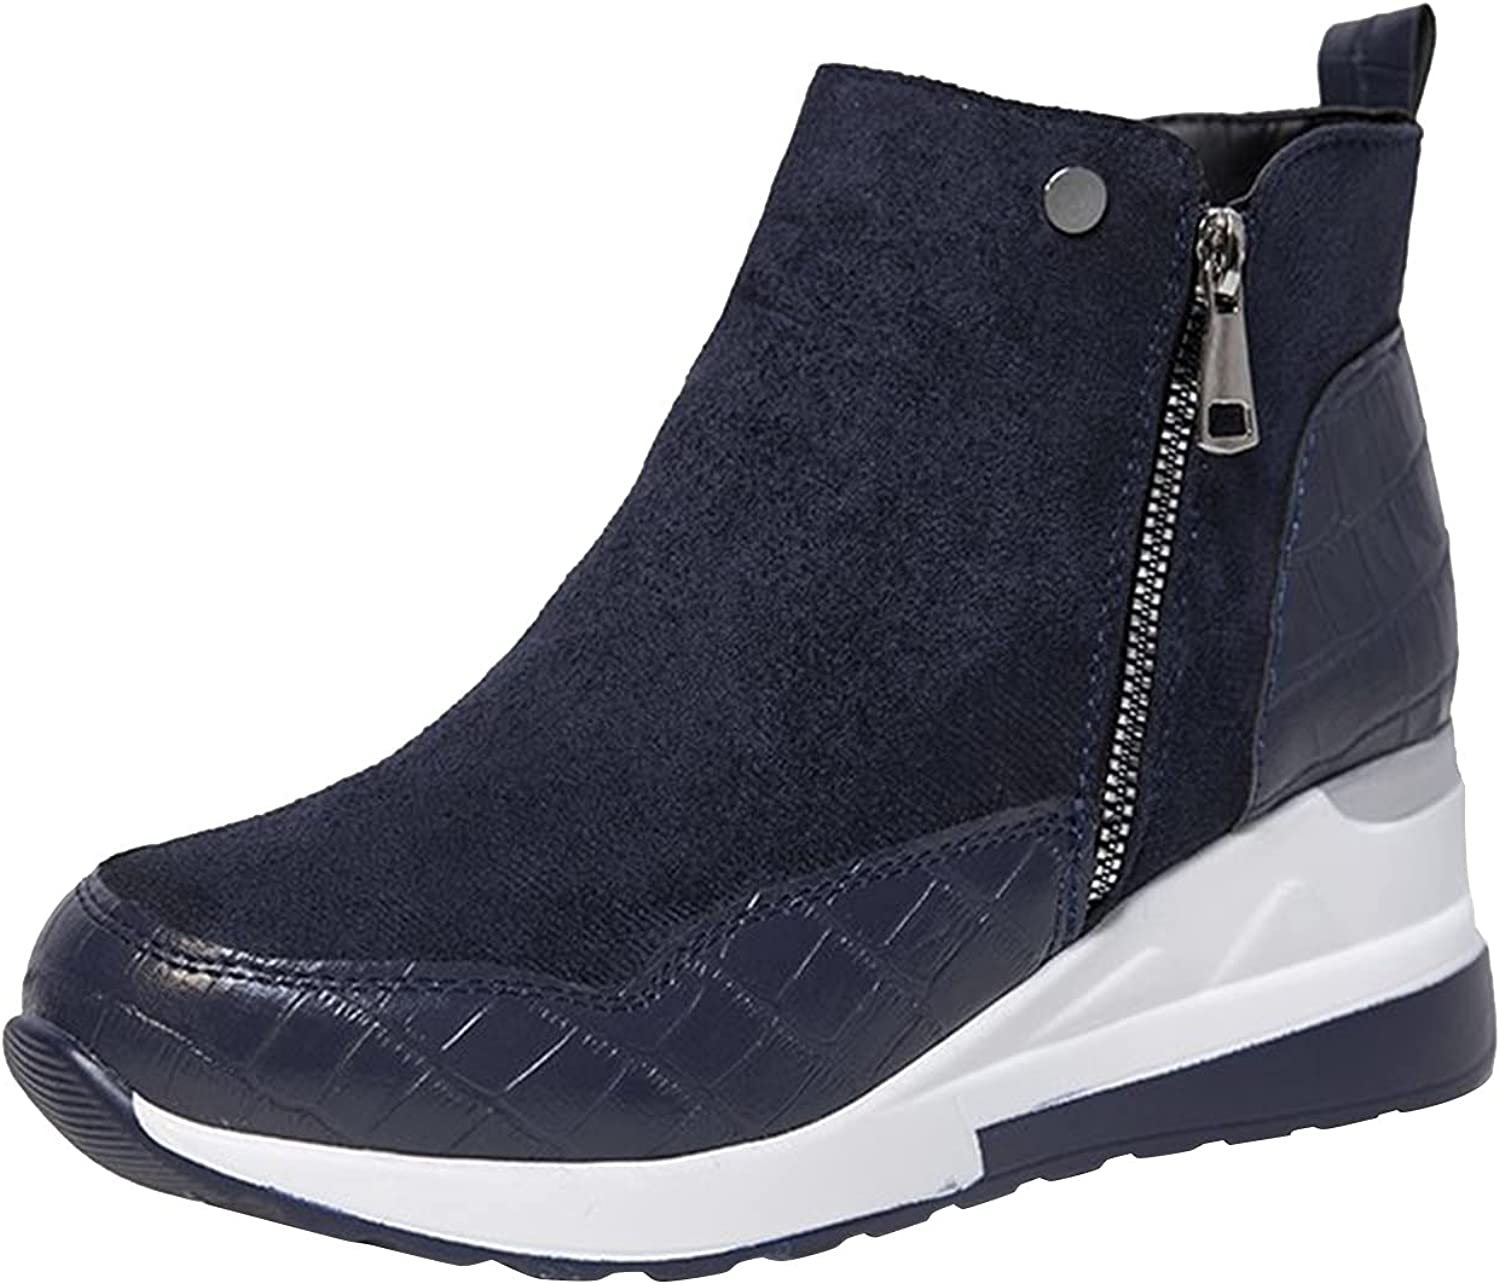 Women's Canvas Sneakers Women's Ankle Boots  BootiesRetro Round